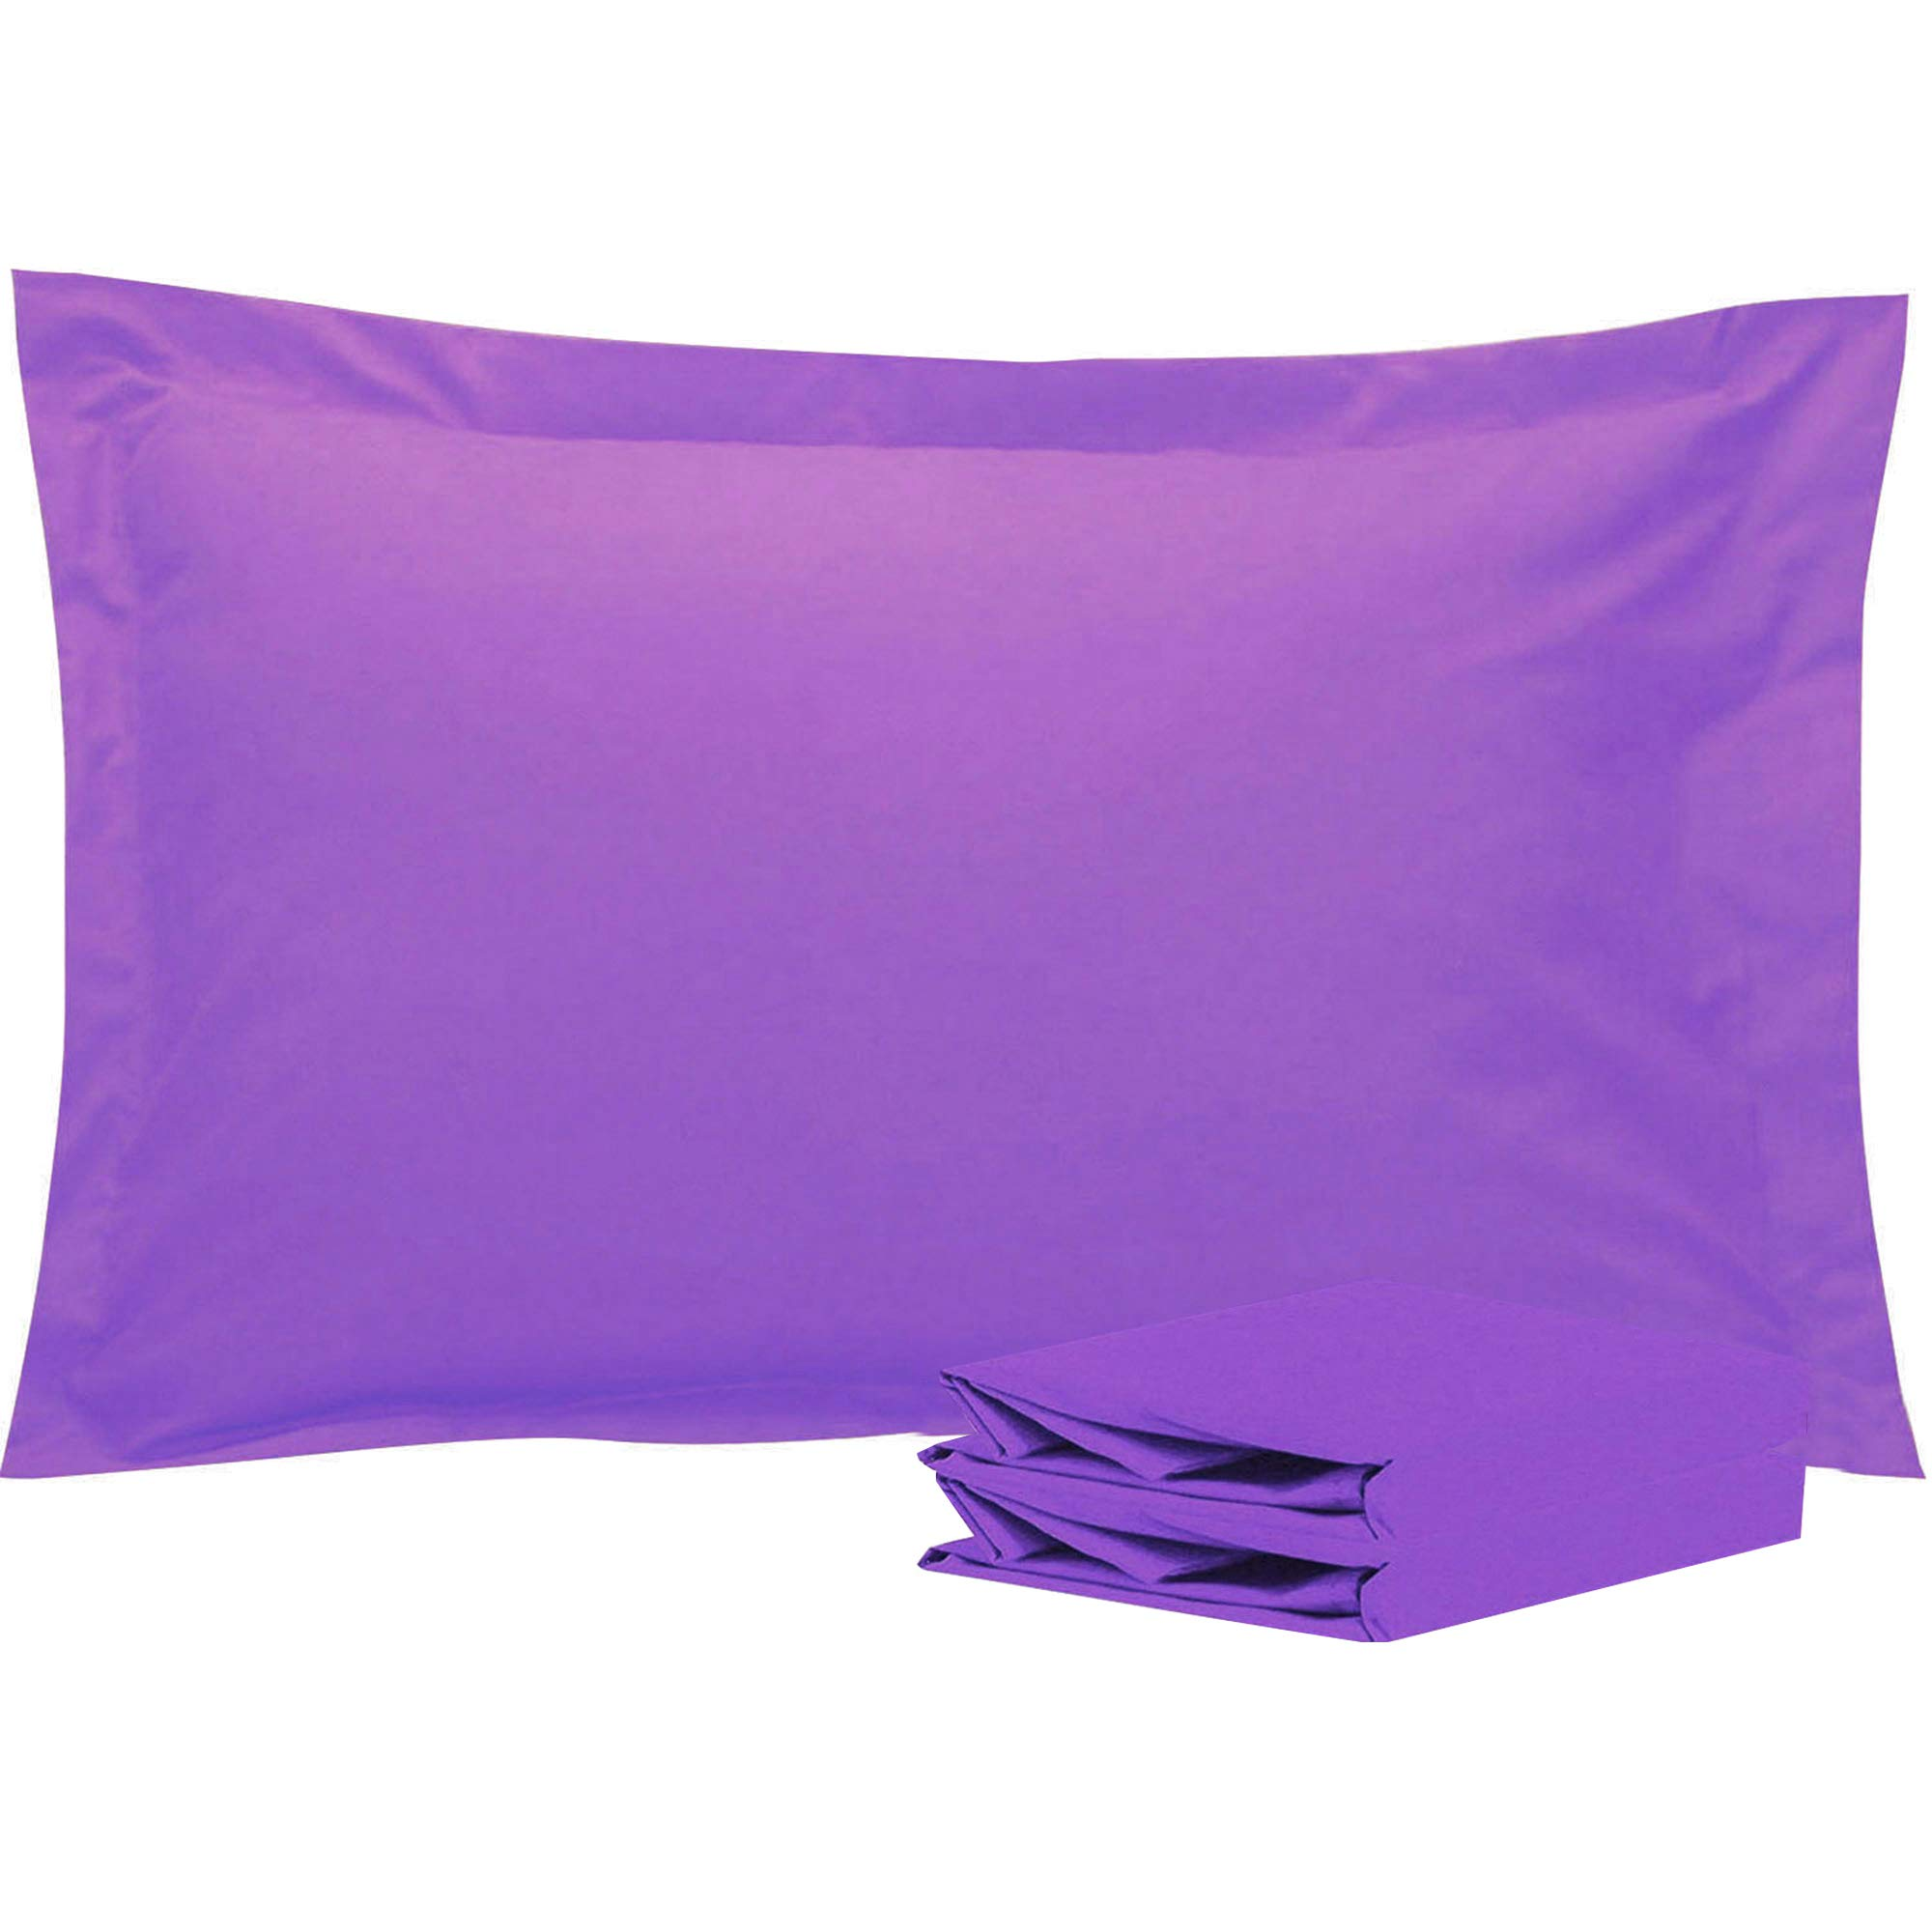 NTBAY Queen Pillow Shams, Set of 2, 100% Brushed Microfiber, Soft and Cozy, Wrinkle, Fade, Stain Resistant (Purple, Queen)